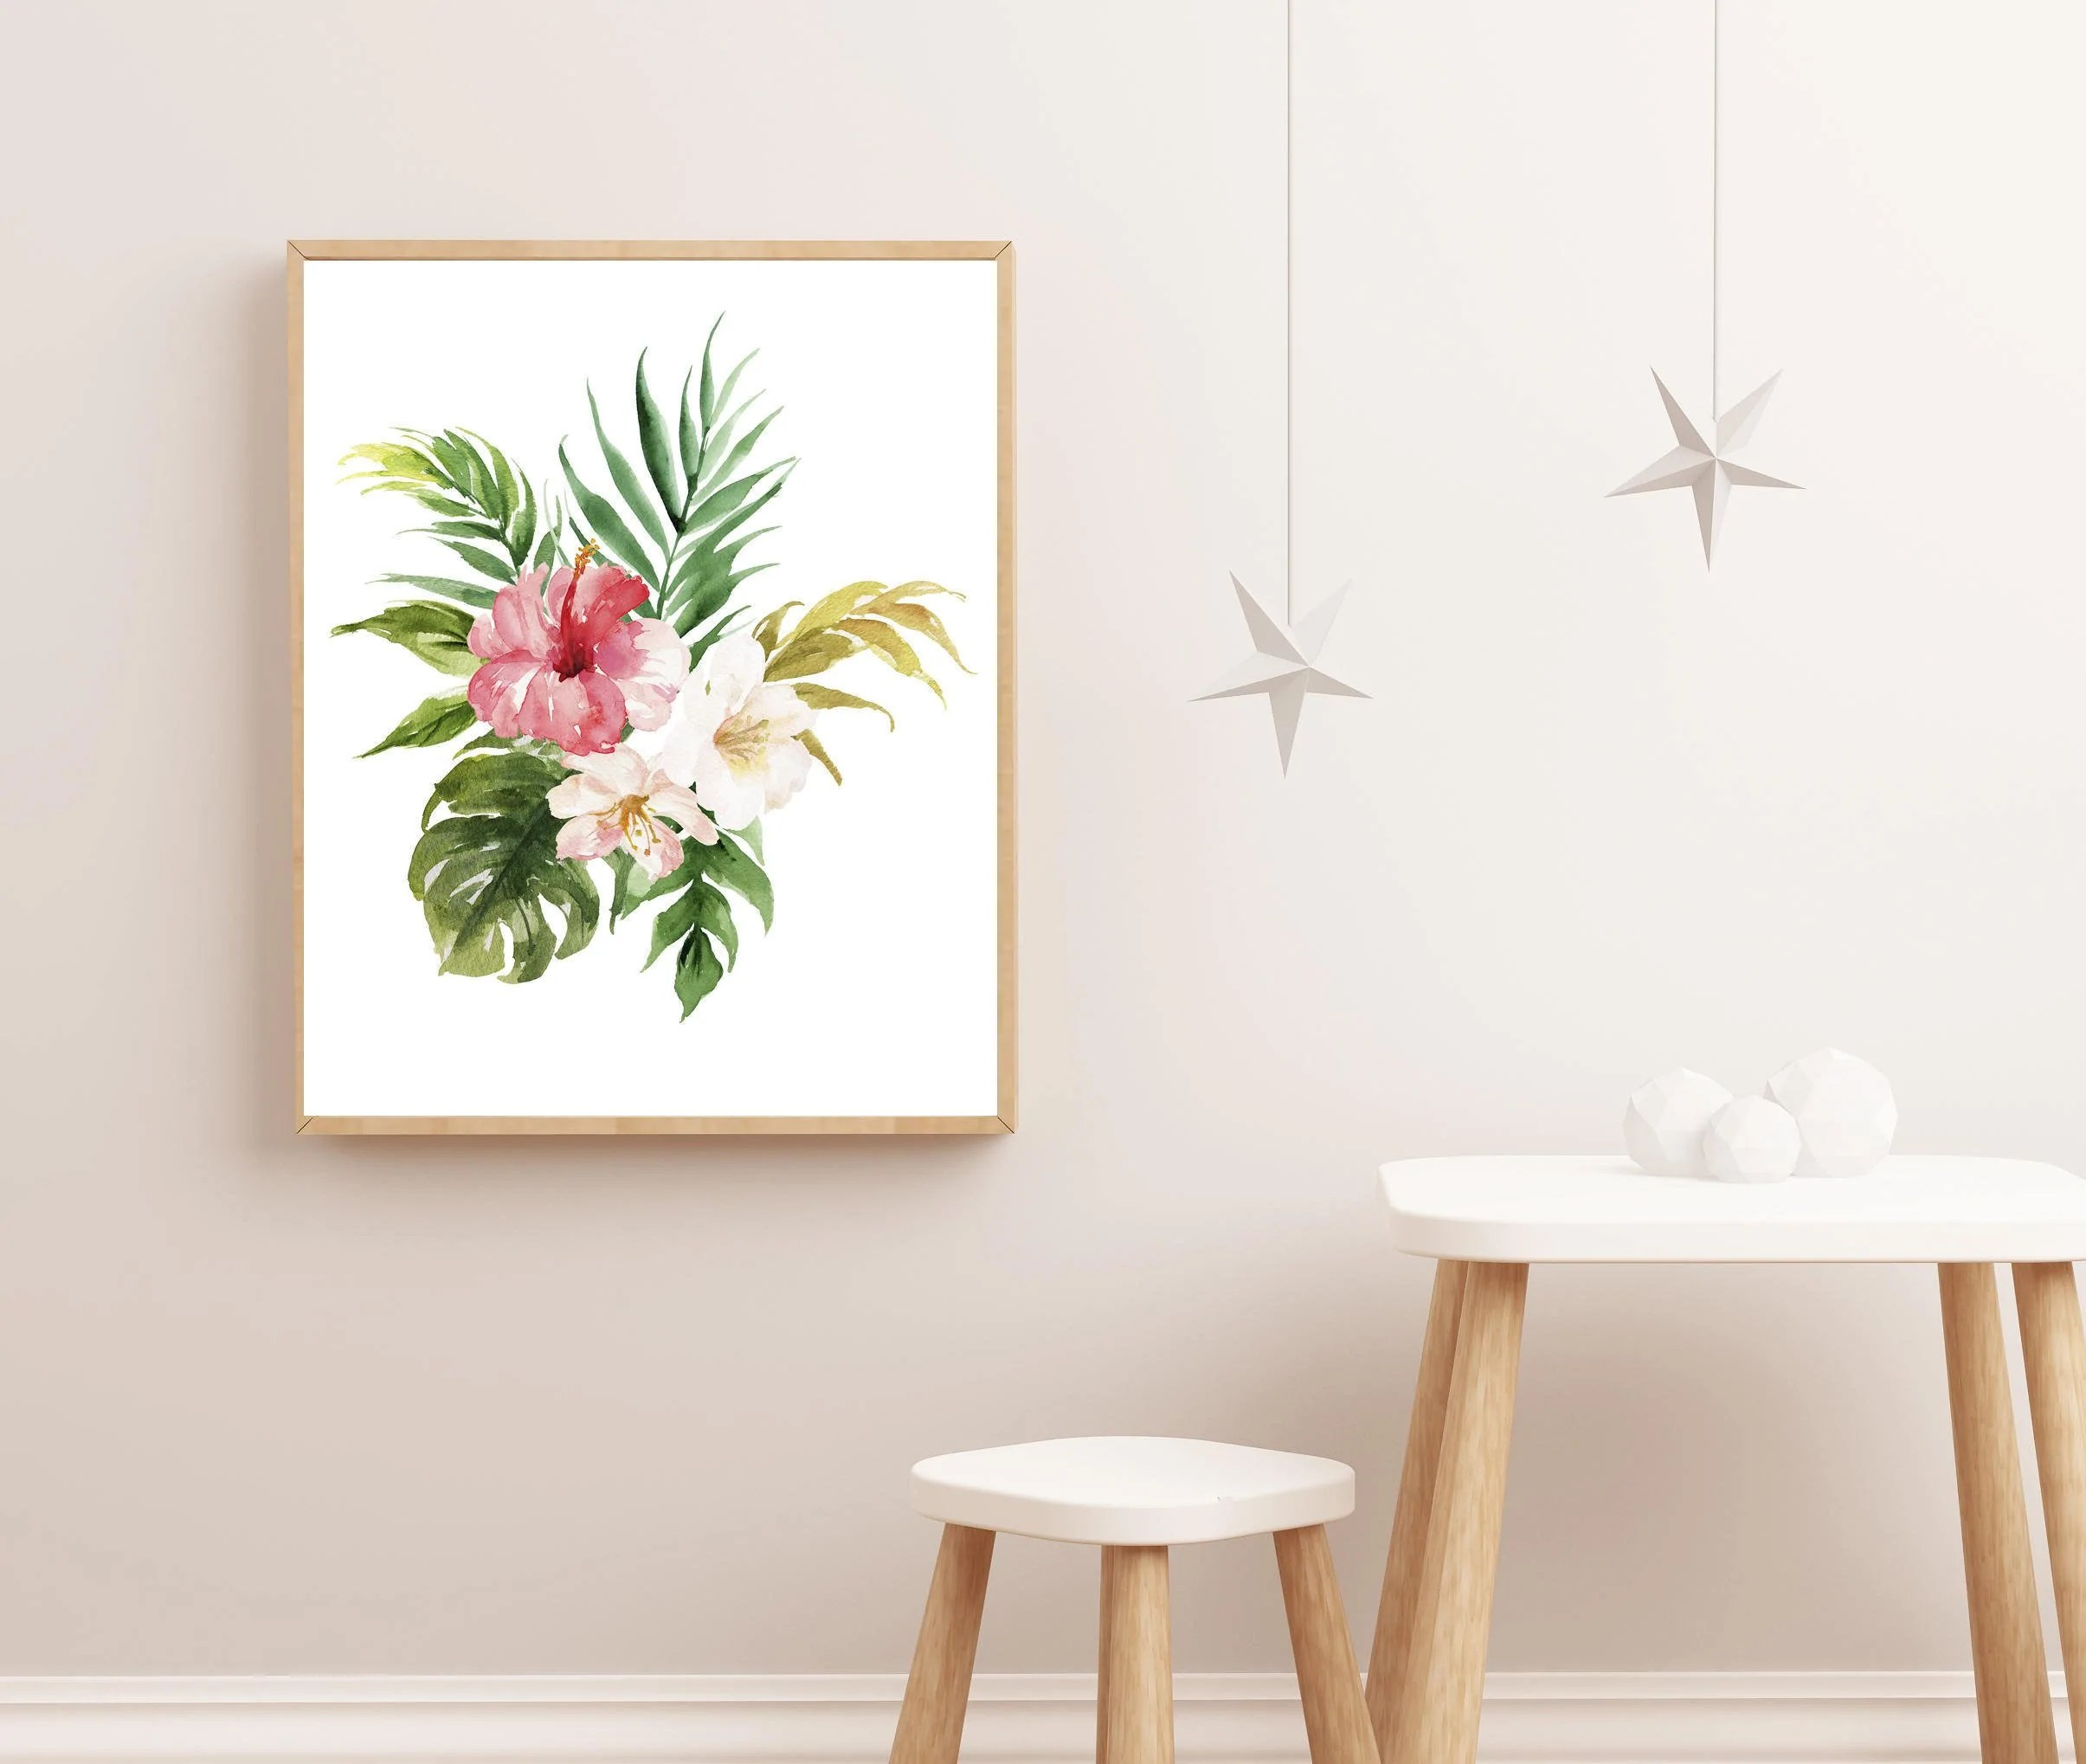 Nursery Prints Girl Girl Nursery Art Tropical Nursery Print Baby Girl Nursery Art Floral Nursery Art Watercolor Print Nursery Decor For Girl Pink Nursery